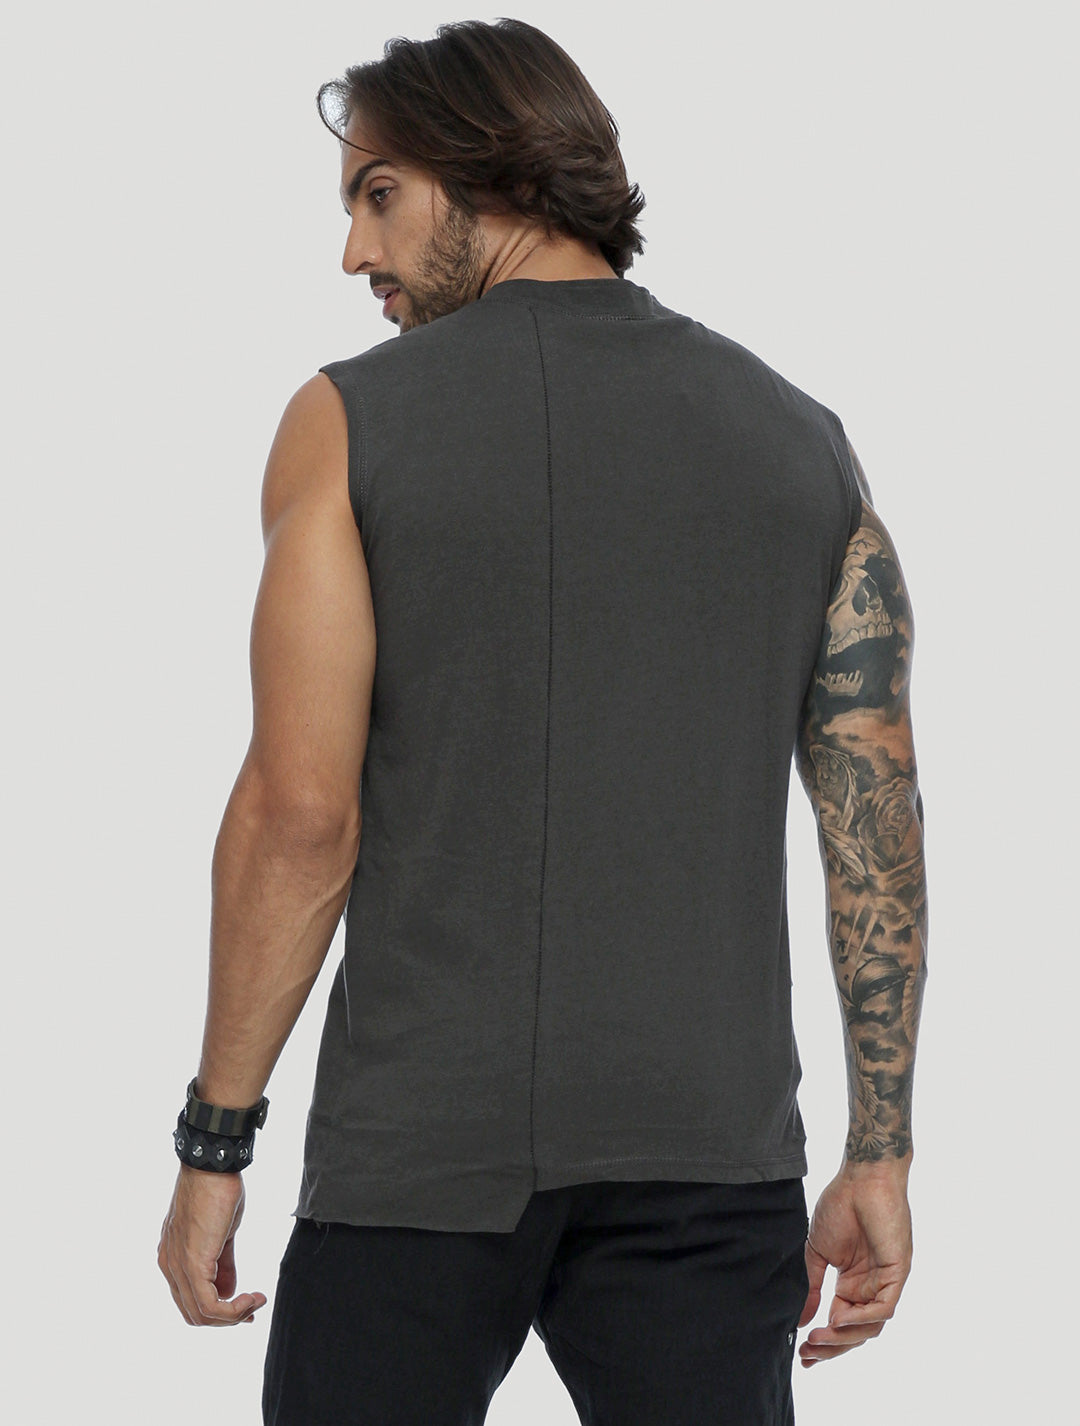 Blended Sleeveless Tee - Psylo